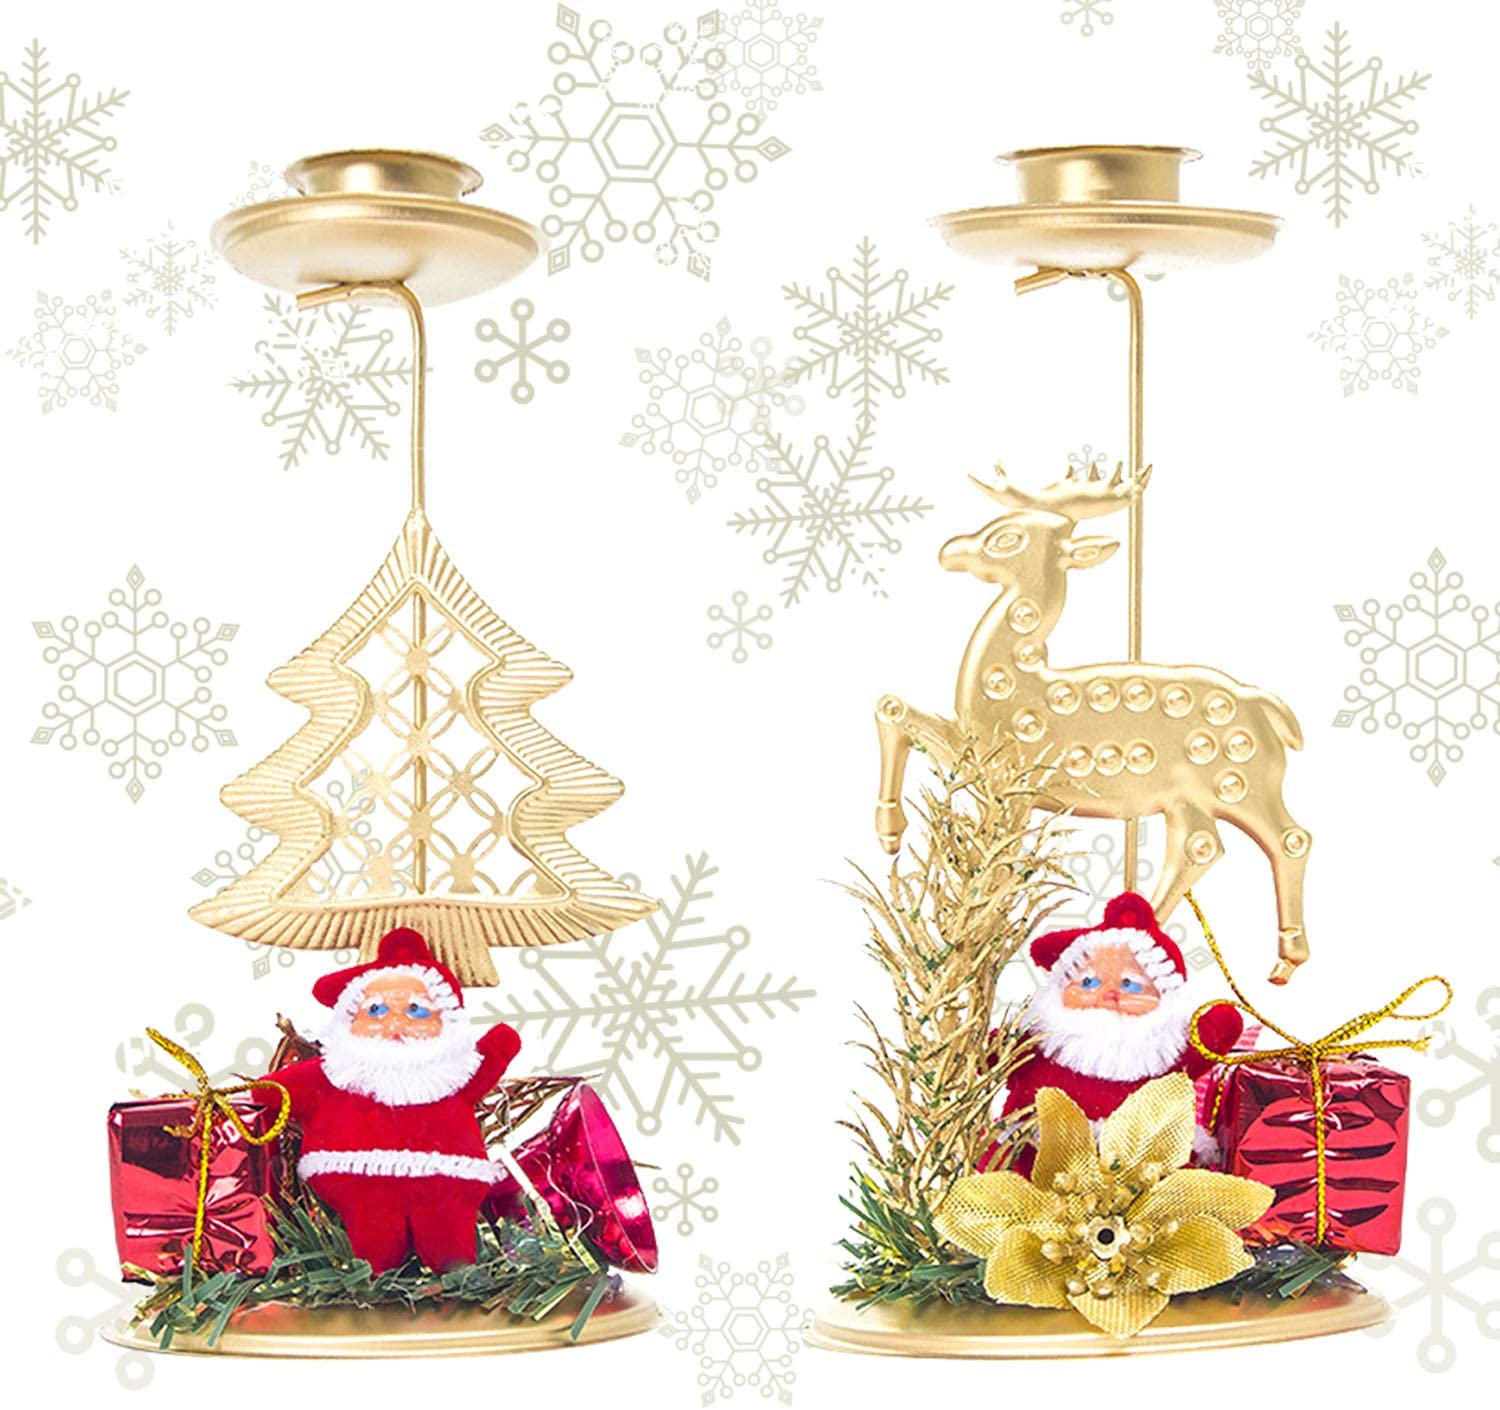 2 PCS Christmas Candle Holder, Santa Claus Ornaments Candle Sticks Golden Christmas Tree Elk Bougie Holder Decoration for Xmas Dining Room Home Display Decor